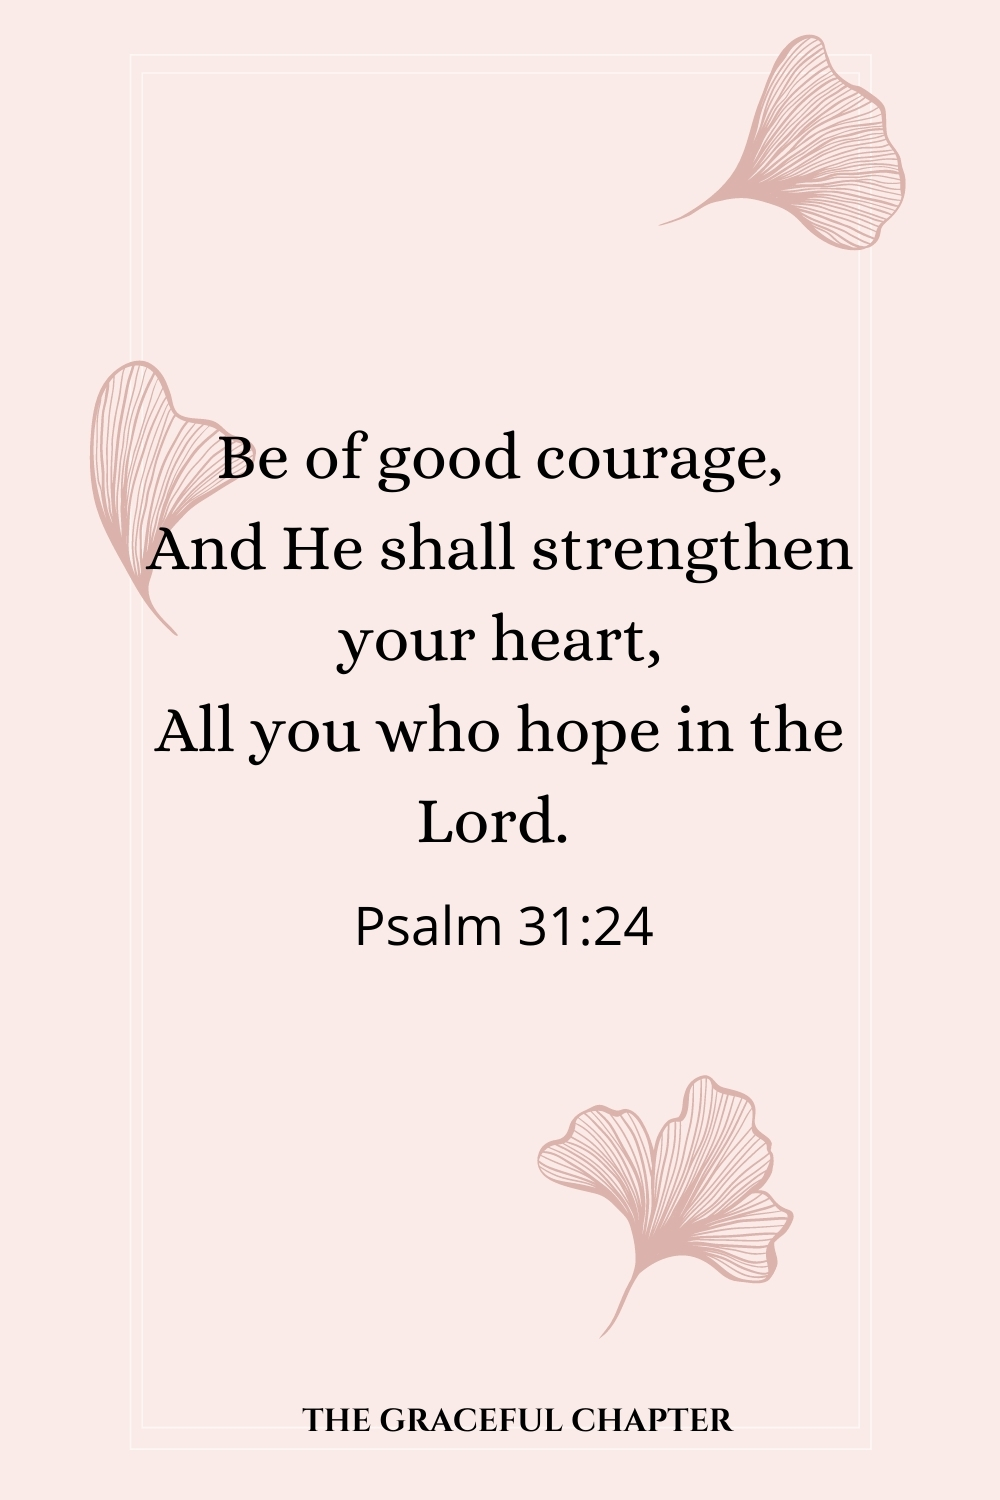 Be of good courage, And He shall strengthen your heart, All you who hope in the Lord. Be of good courage, And He shall strengthen your heart, All you who hope in the Lord.  Psalm 31:24